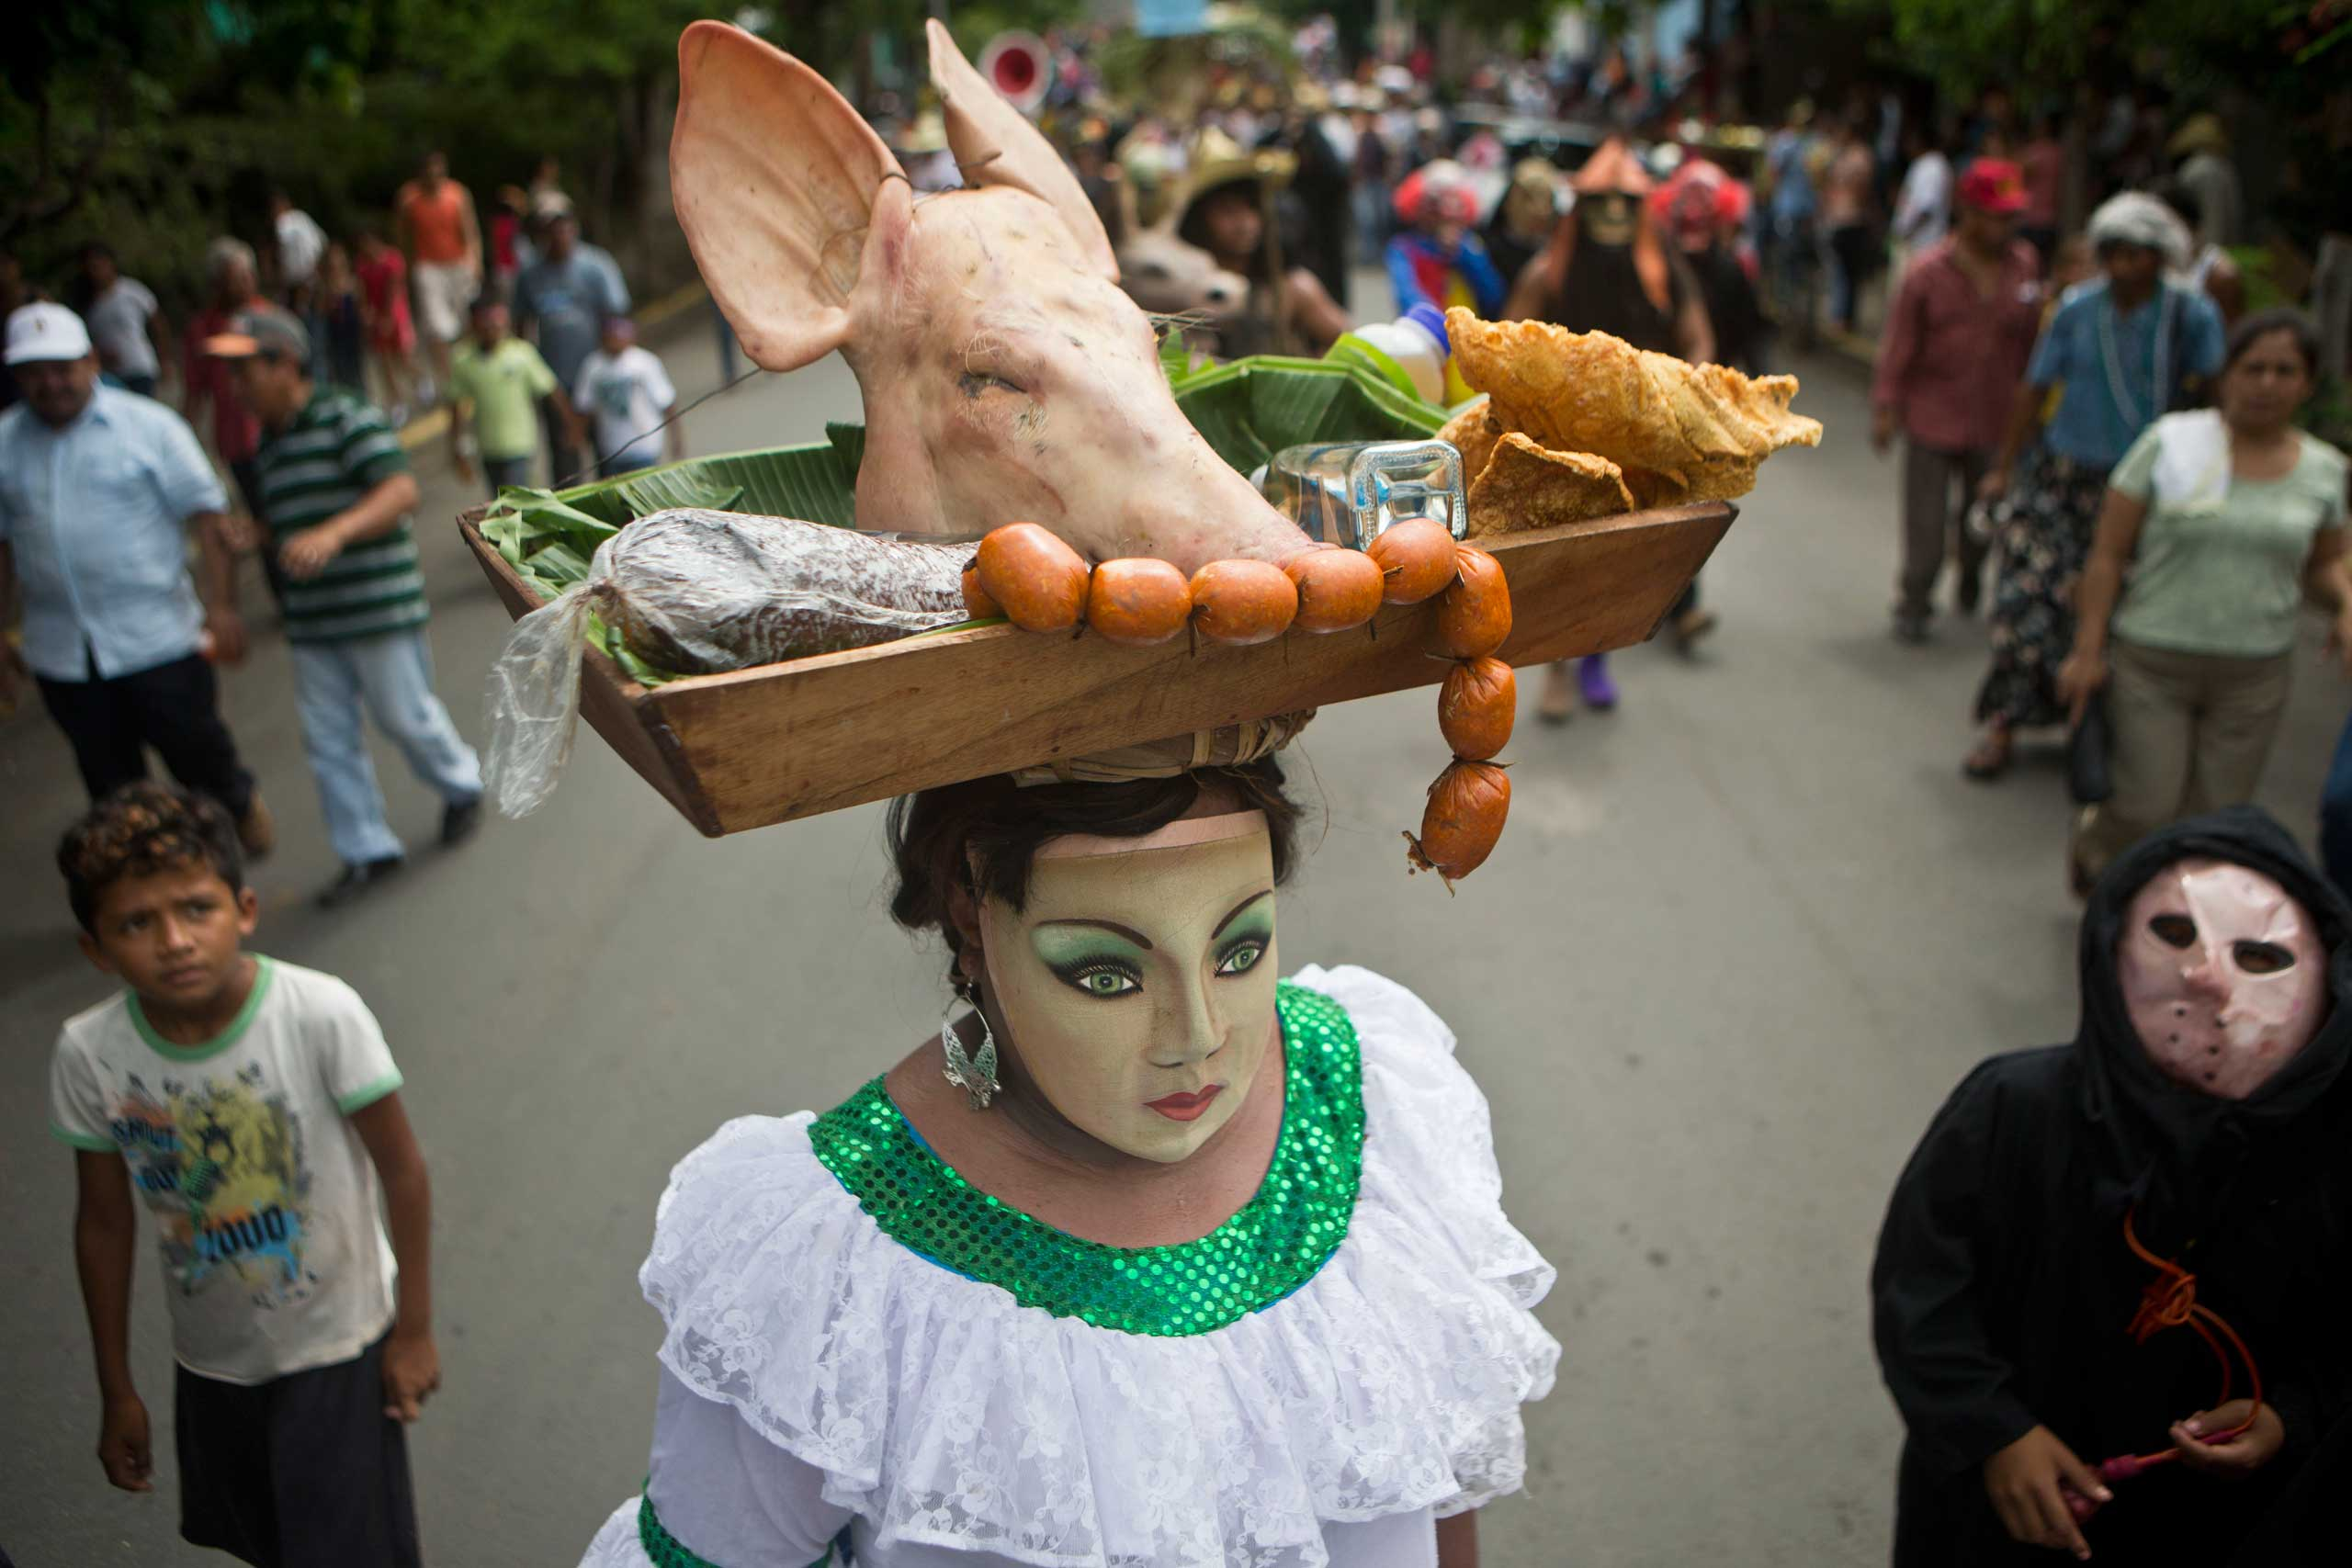 A man dressed as a woman, carries a pig's head on a platter balanced on his head during the celebration of  Torovenado,  in honor of Masaya's patron saint, San Jeronimo, in Masaya, Nicaragua, on Oct. 26, 2014.